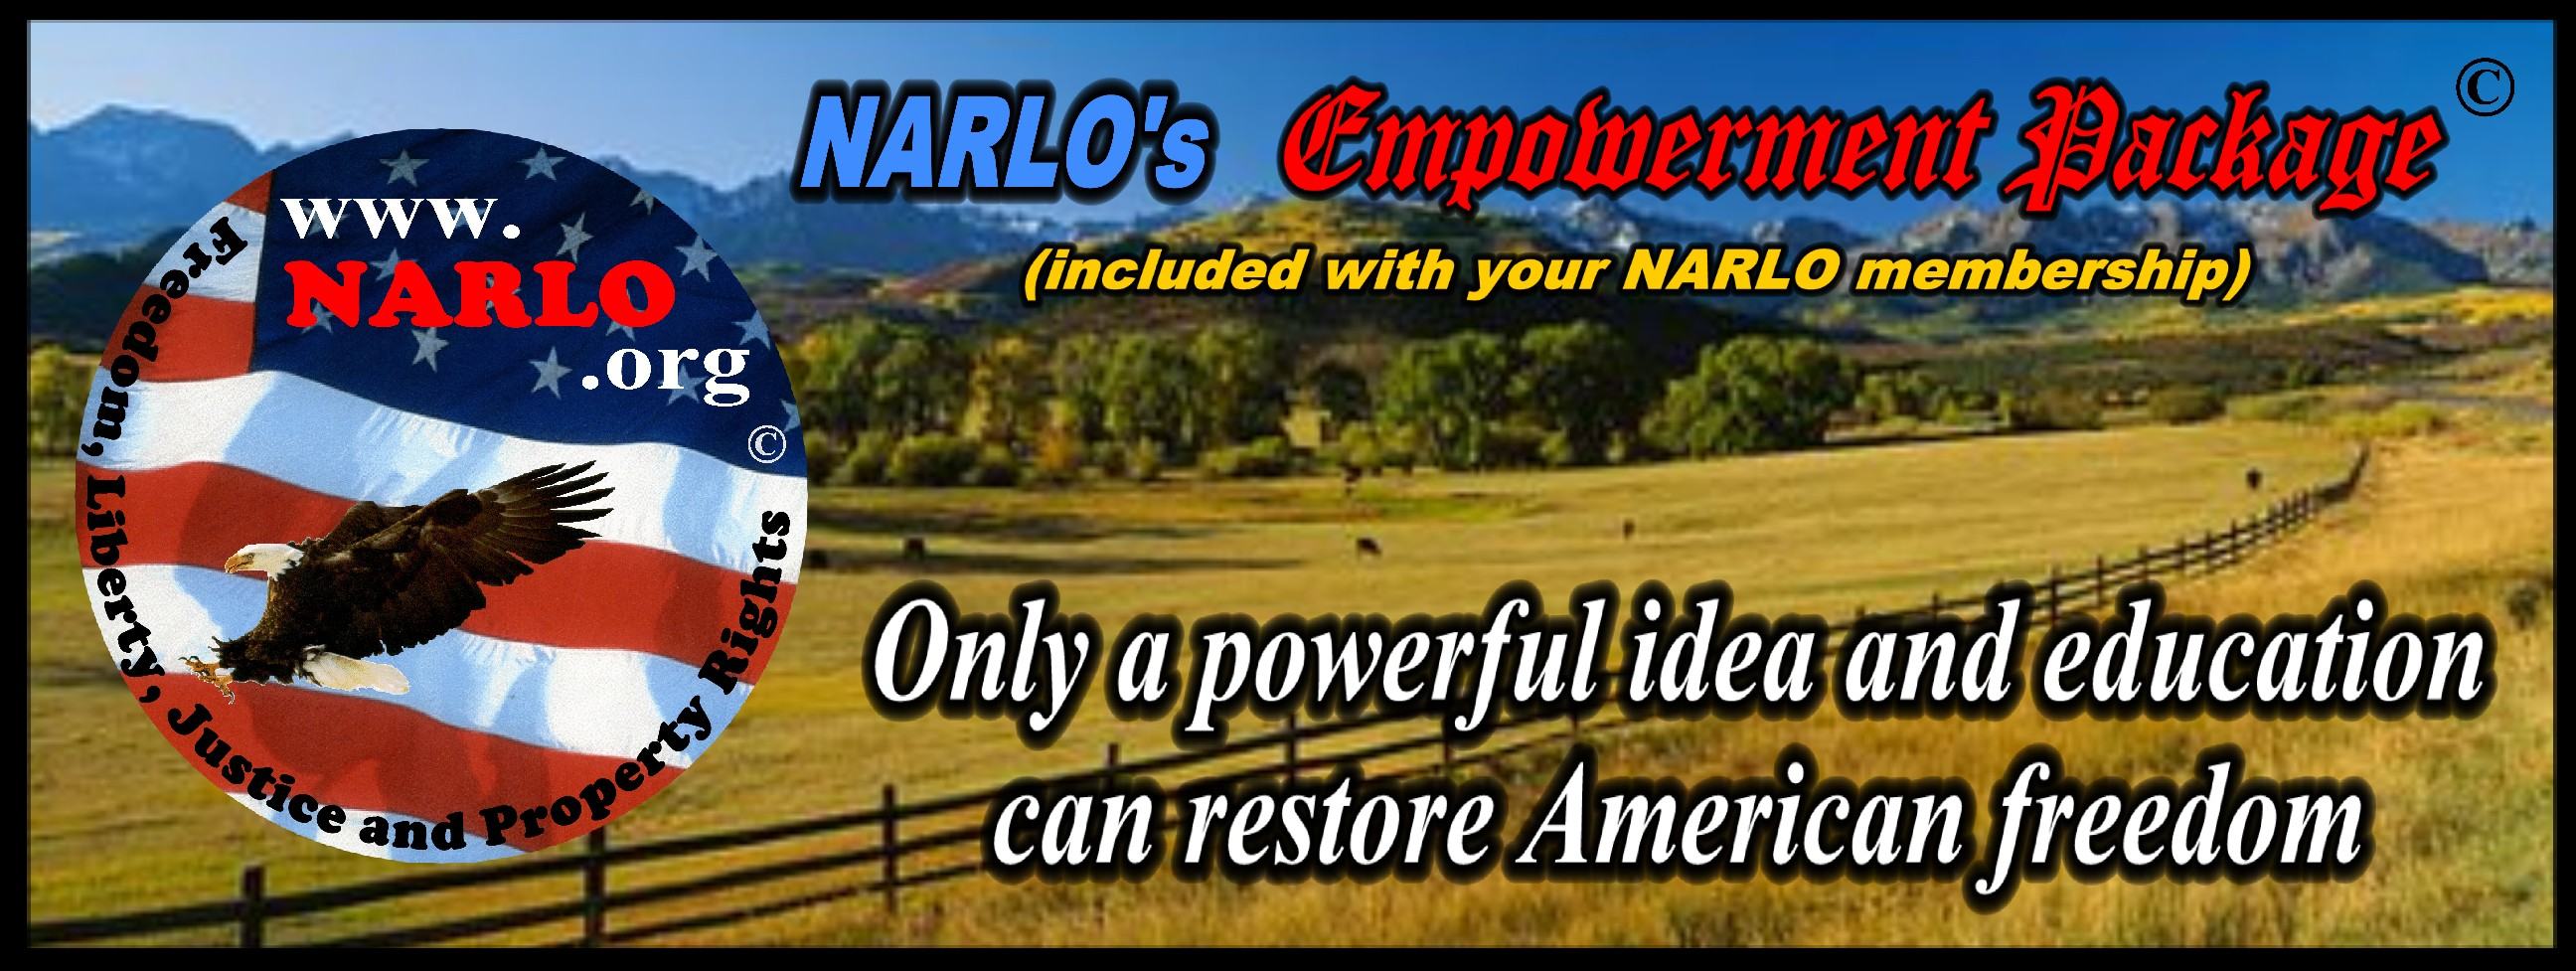 NARLO Empowerment Package